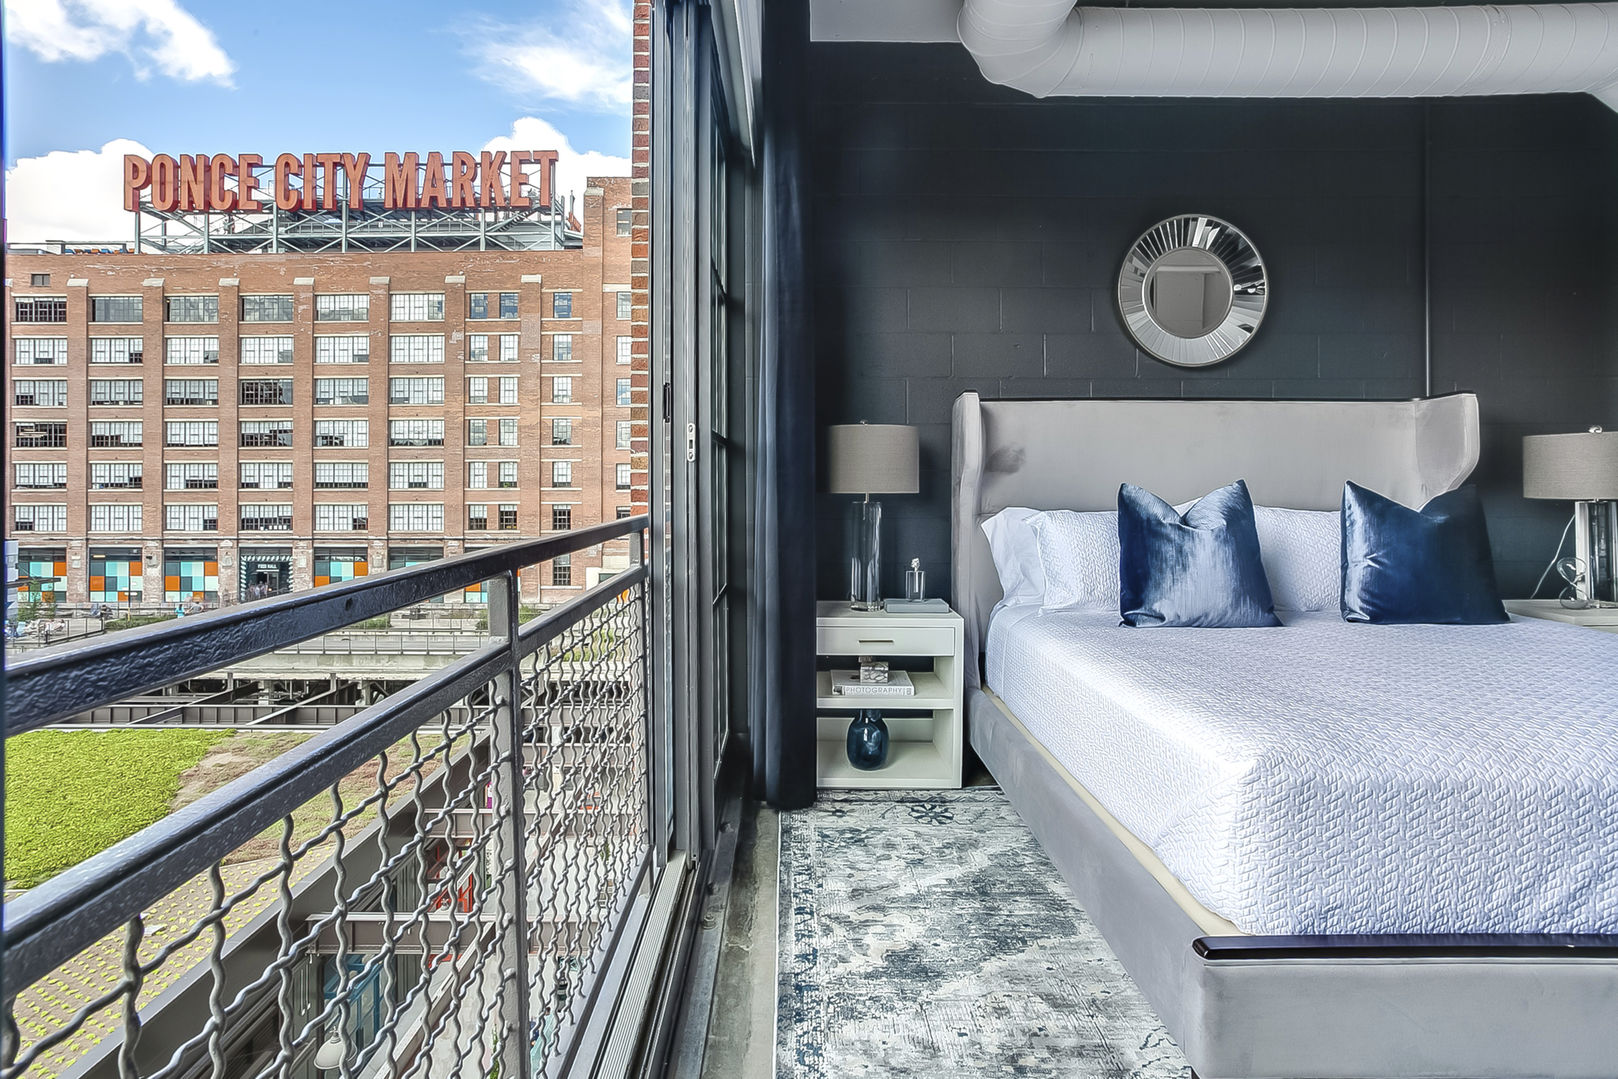 The large bed and nightstands of the Sleeping area of this Apartment Near Ponce City Market.